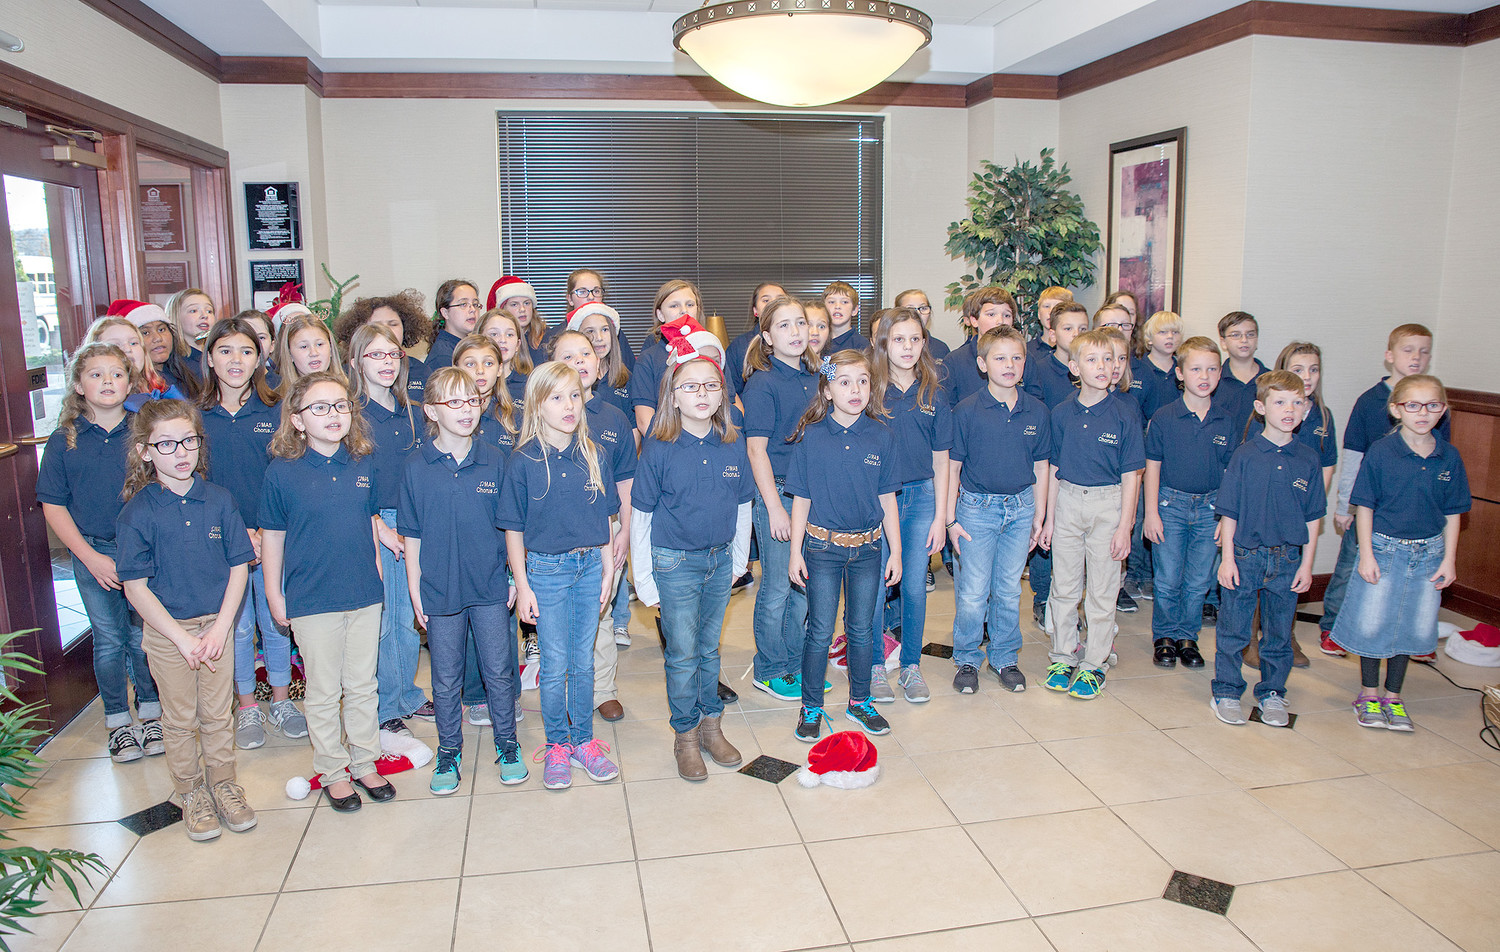 THE MICHIGAN AVENUE SCHOOL Chorus performed Christmas carols for the employees and customers of Athens Federal Community Bank, Friday morning.